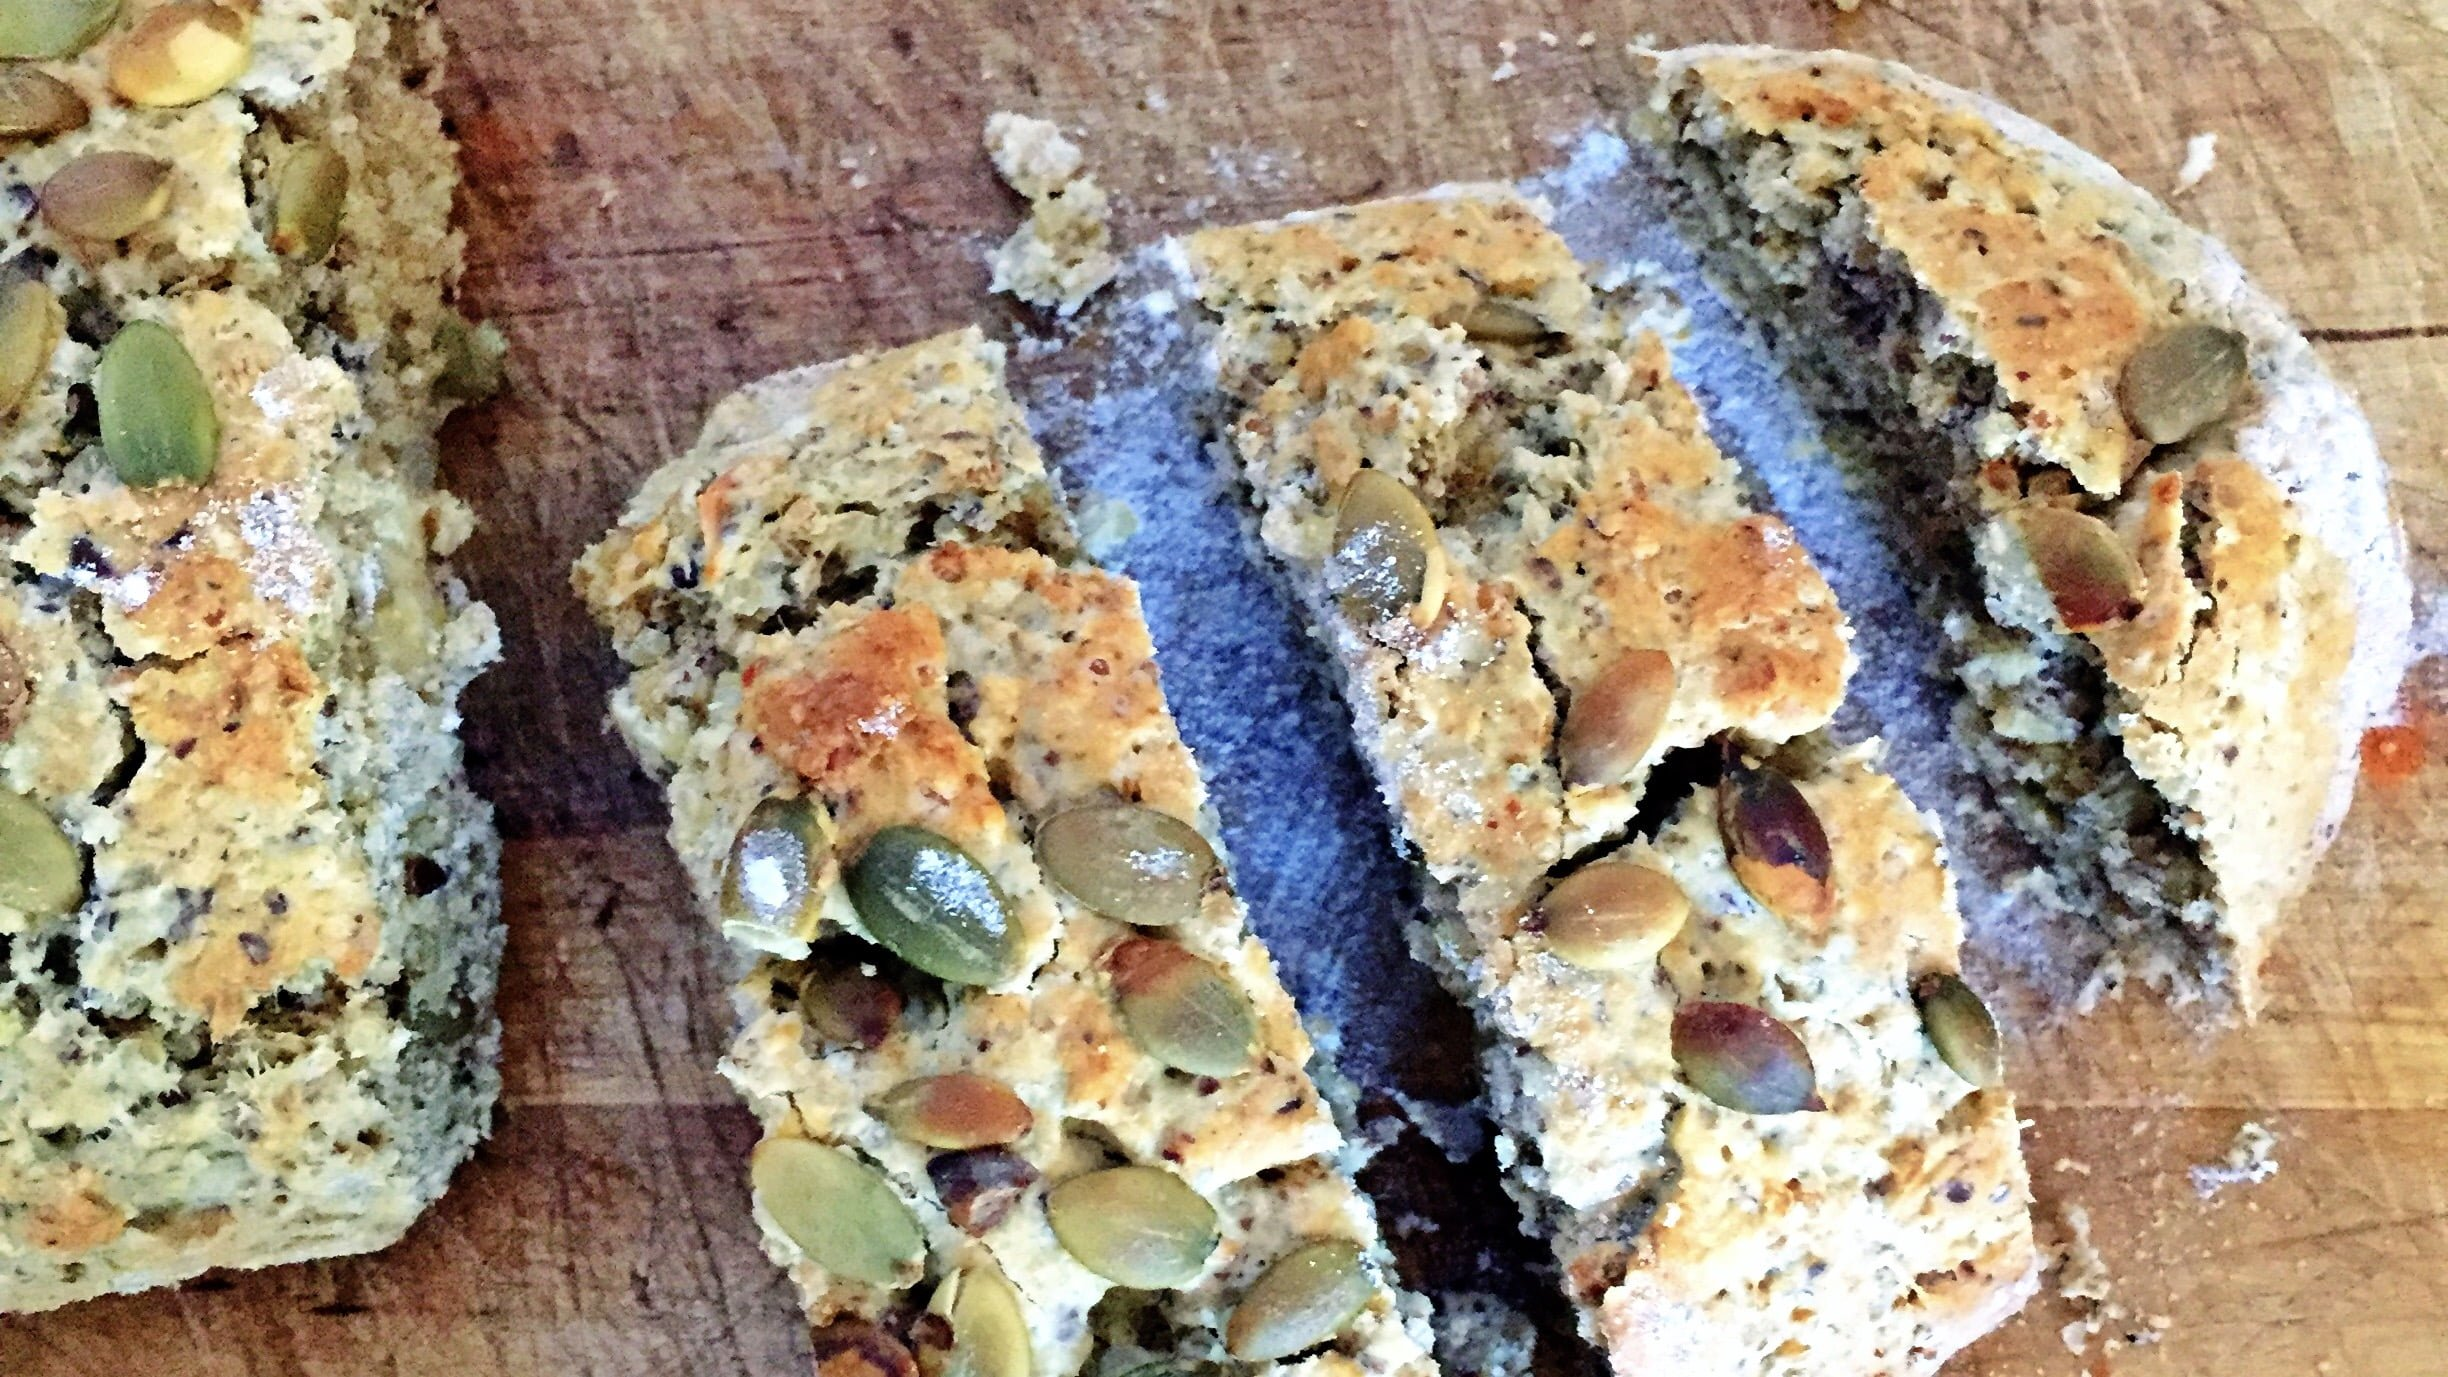 Super Seeded Gluten-free Bread Recipe